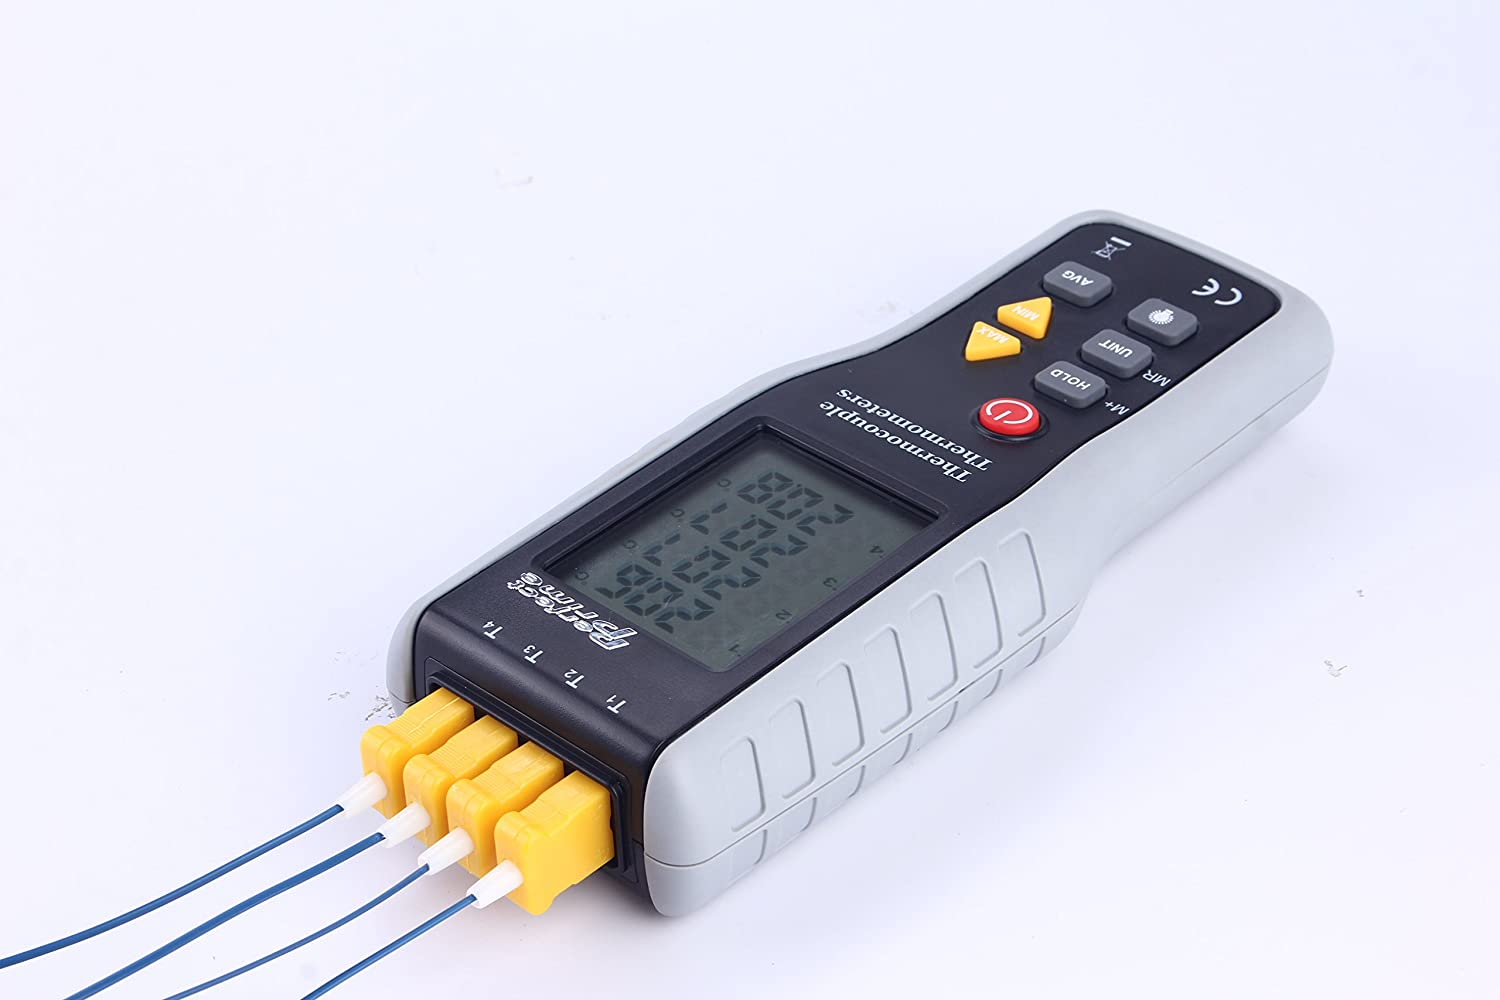 Perfect-Prime TC41/T1 4-Channel K-Type Digital Thermocouple Thermometer & Sensor with pipe clamp for -200~1372° C/2501° F Range of Temperature Measurement Perfect Prime